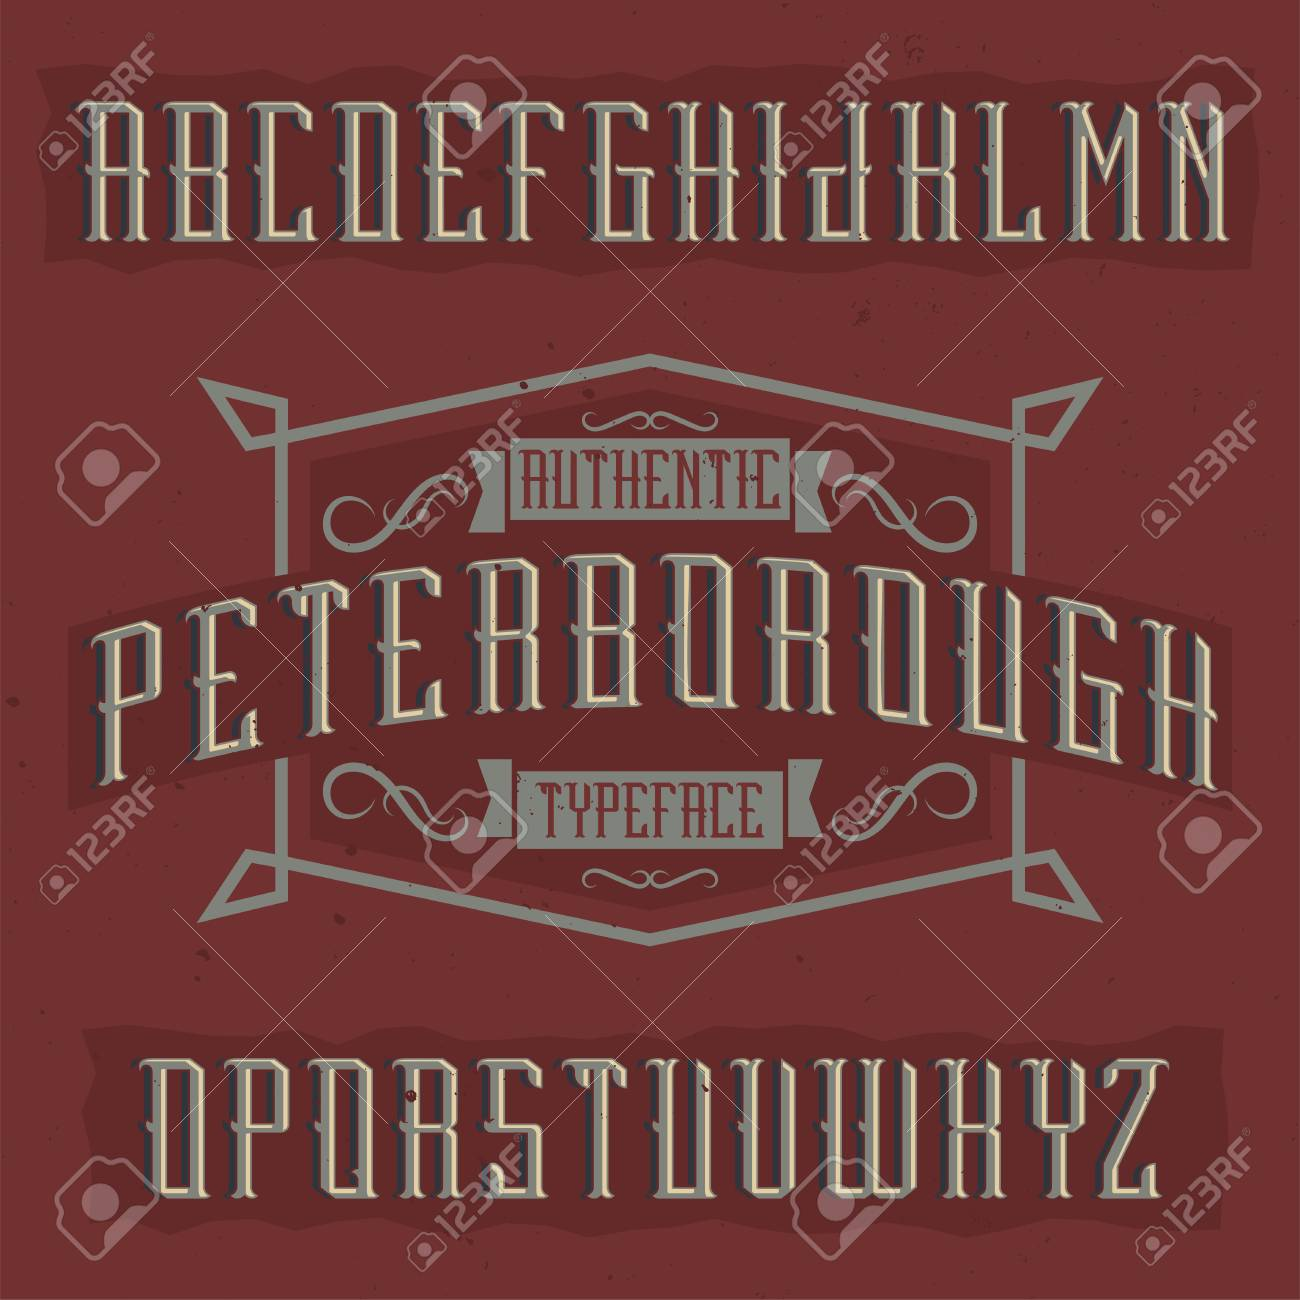 Vintage label typeface named Peterborough. Good font to use in any vintage labels or logo. - 112056441